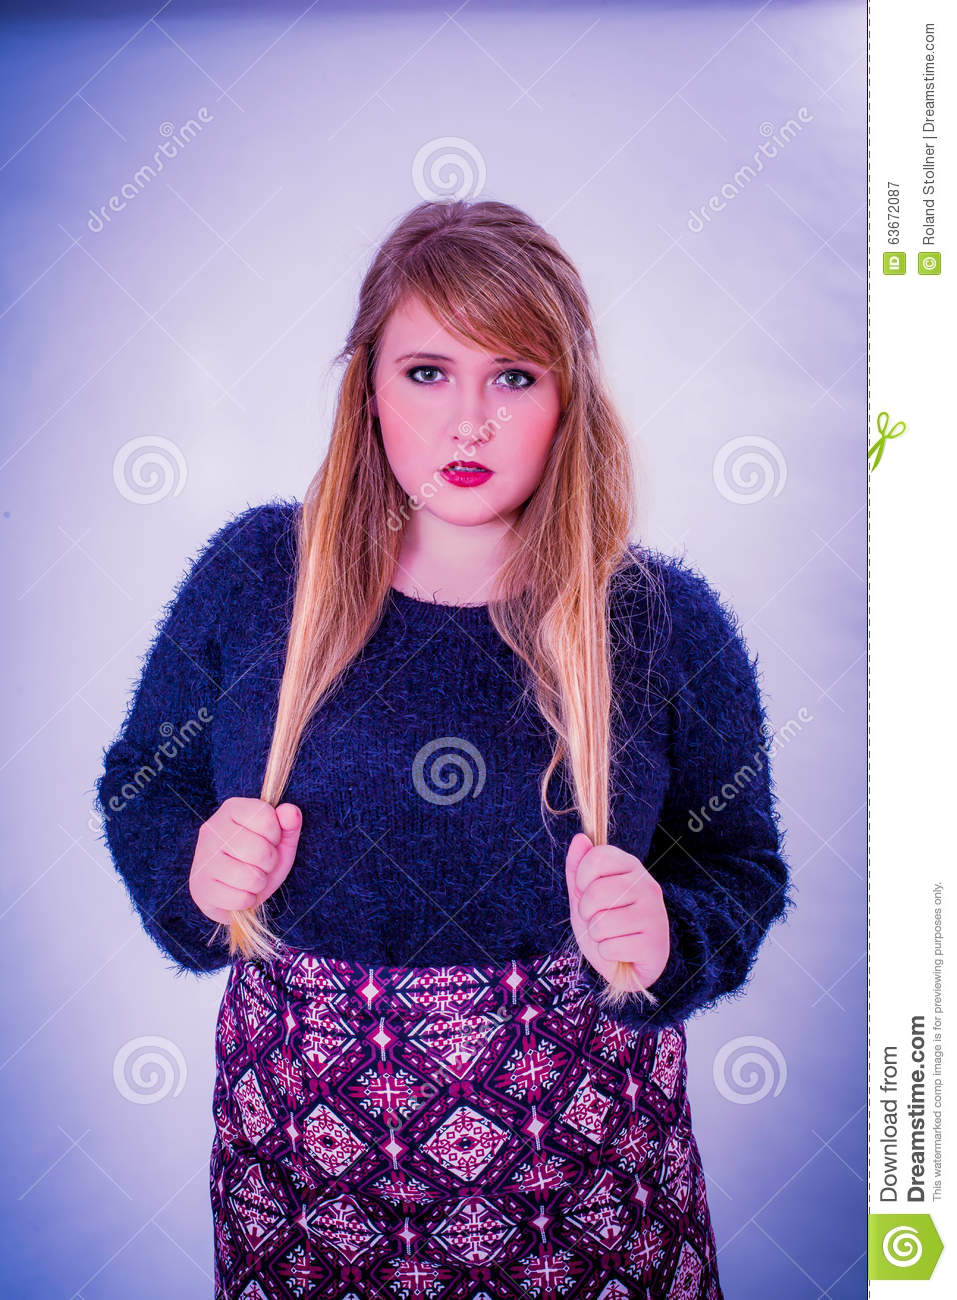 You Ve Got To Be Kidding Me Stock Photo Image 63672087